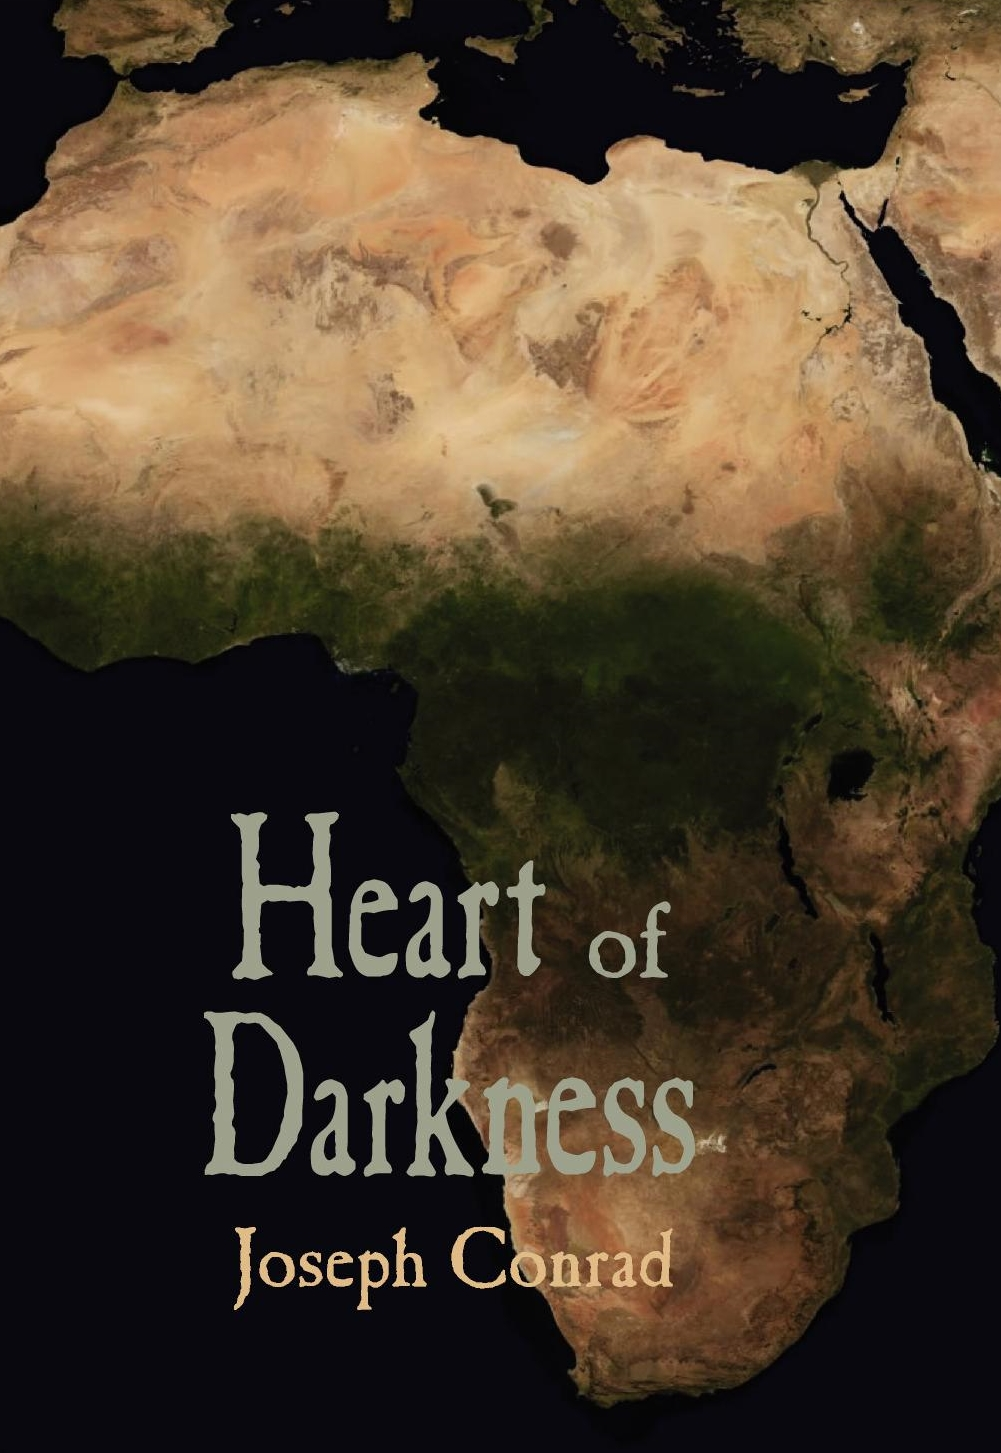 the power of imperialism and the stripping of a landscape in joseph conrads heart of darkness and as